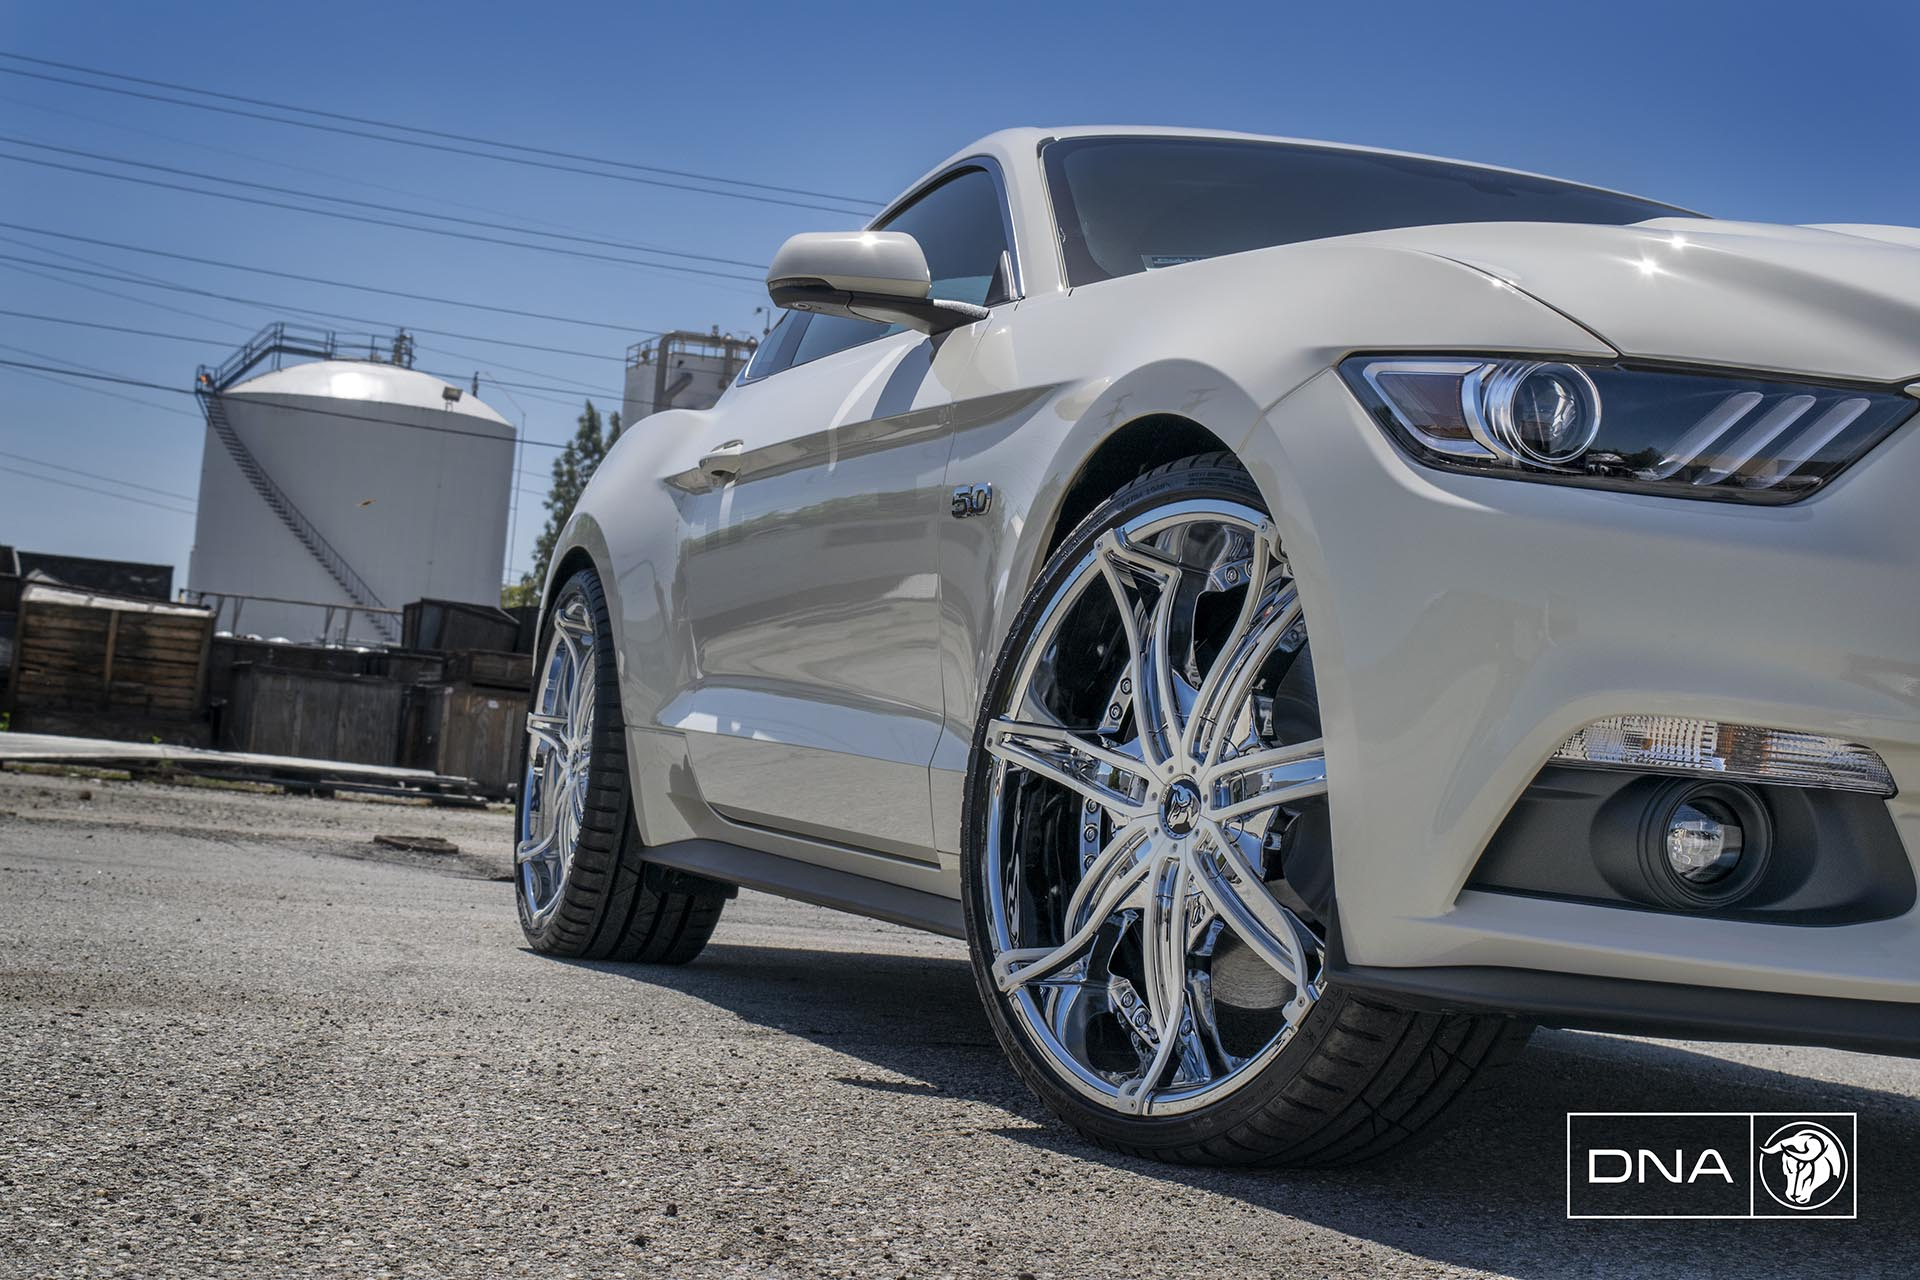 Chrome Diablo DNA Wheels on a Ford Mustang